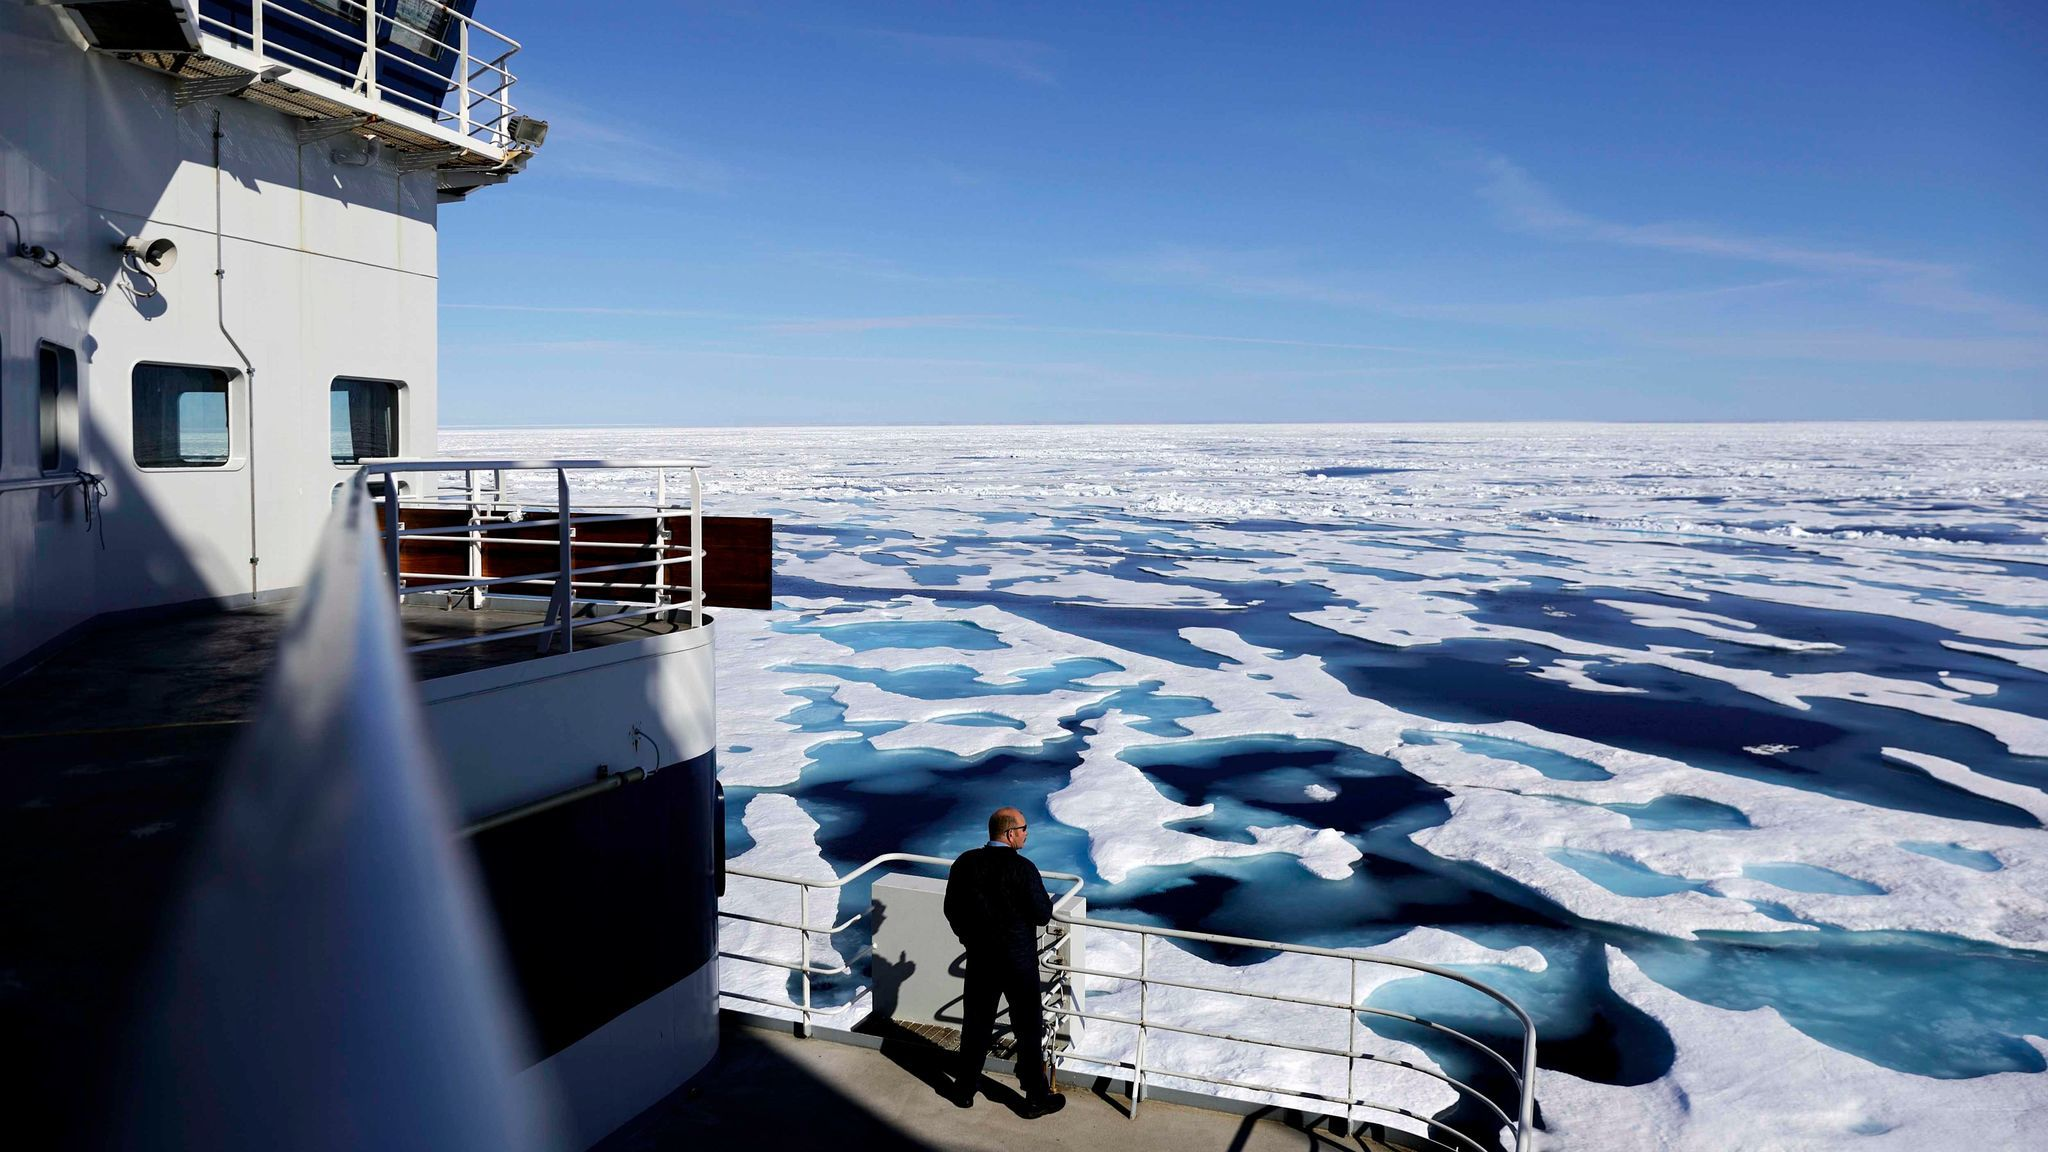 Finnish icebreaker MSV Nordica passes through Victoria Strait while transiting the Northwest Passage connecting the Pacific and Atlantic oceans earlier than had ever been recorded.